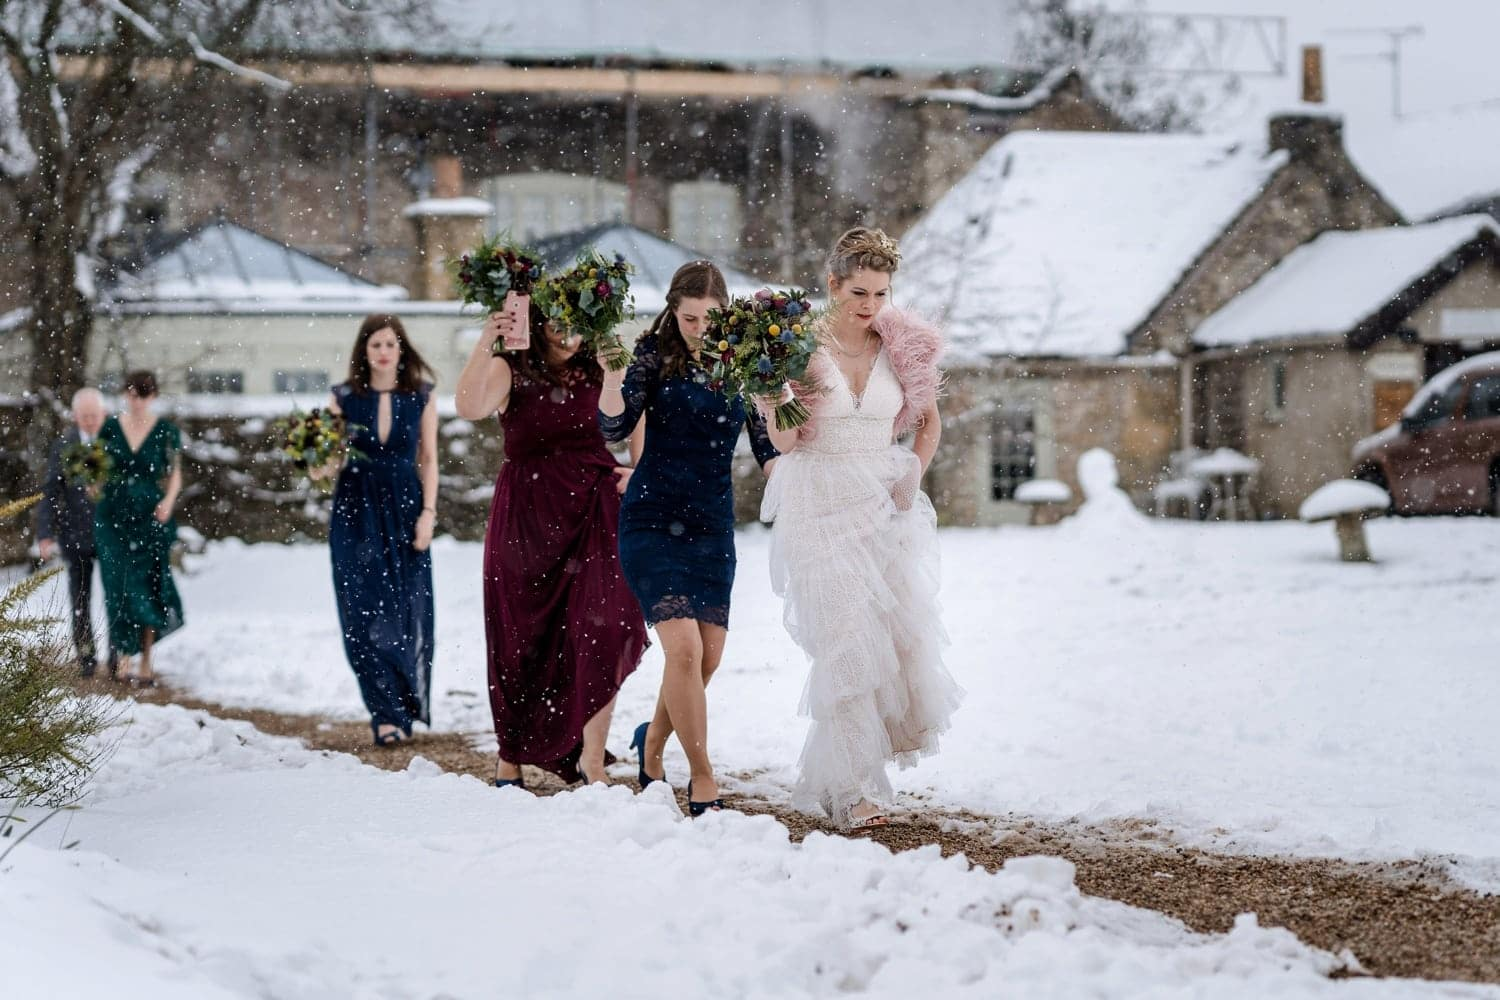 Bride walking through snow